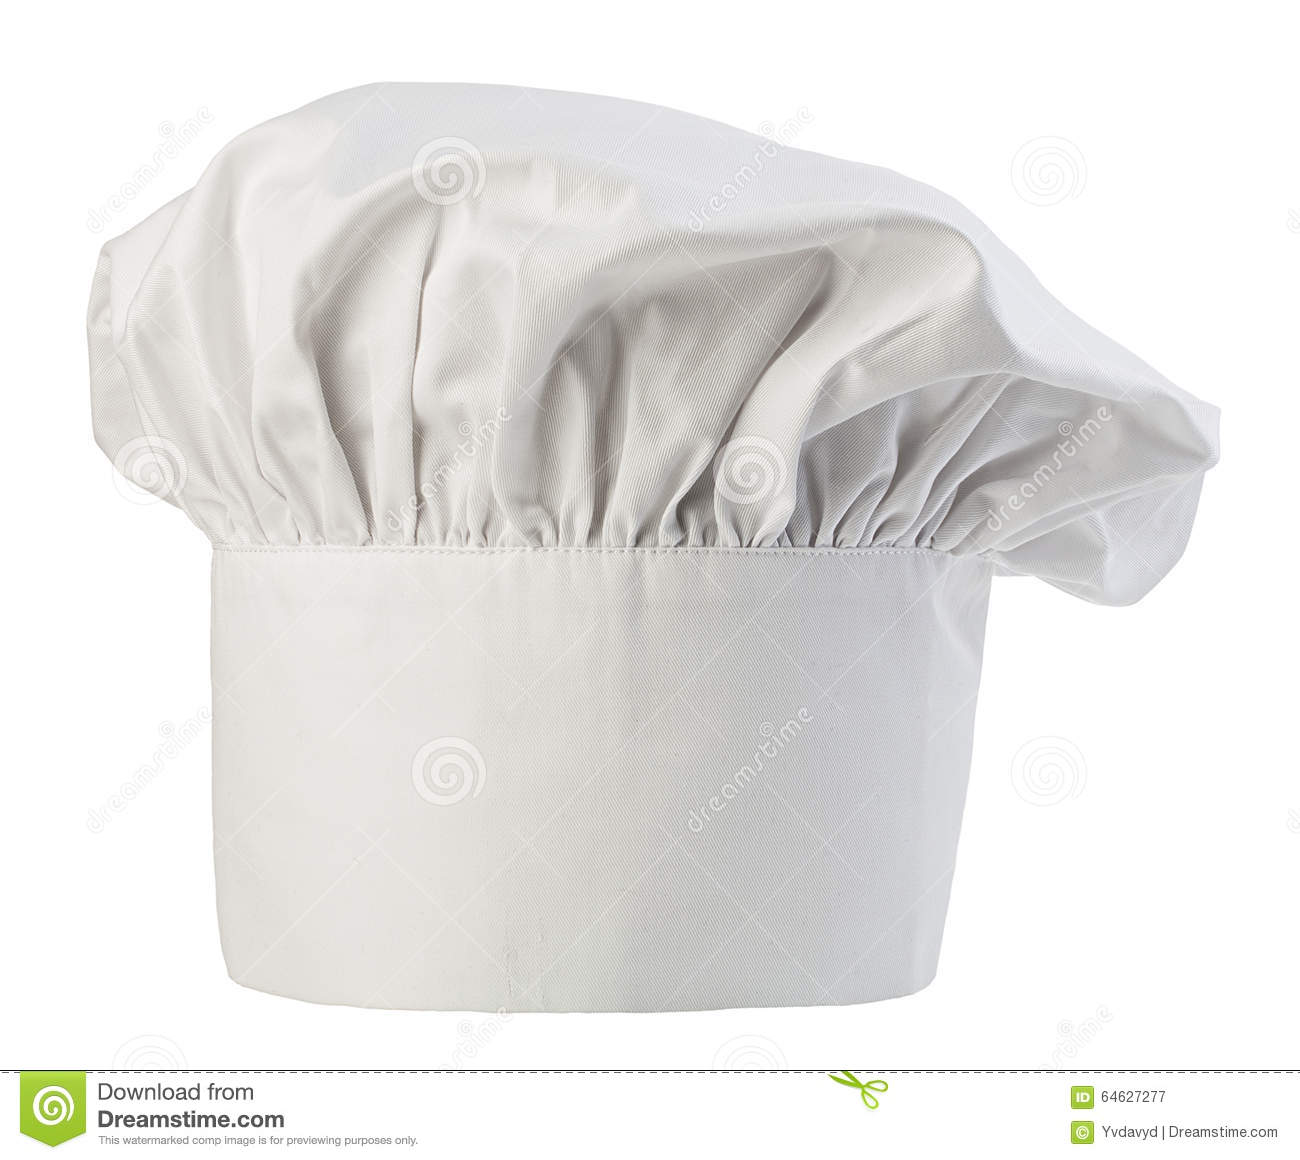 Chef s hat close-up isolated on a white background. Cooks cap.